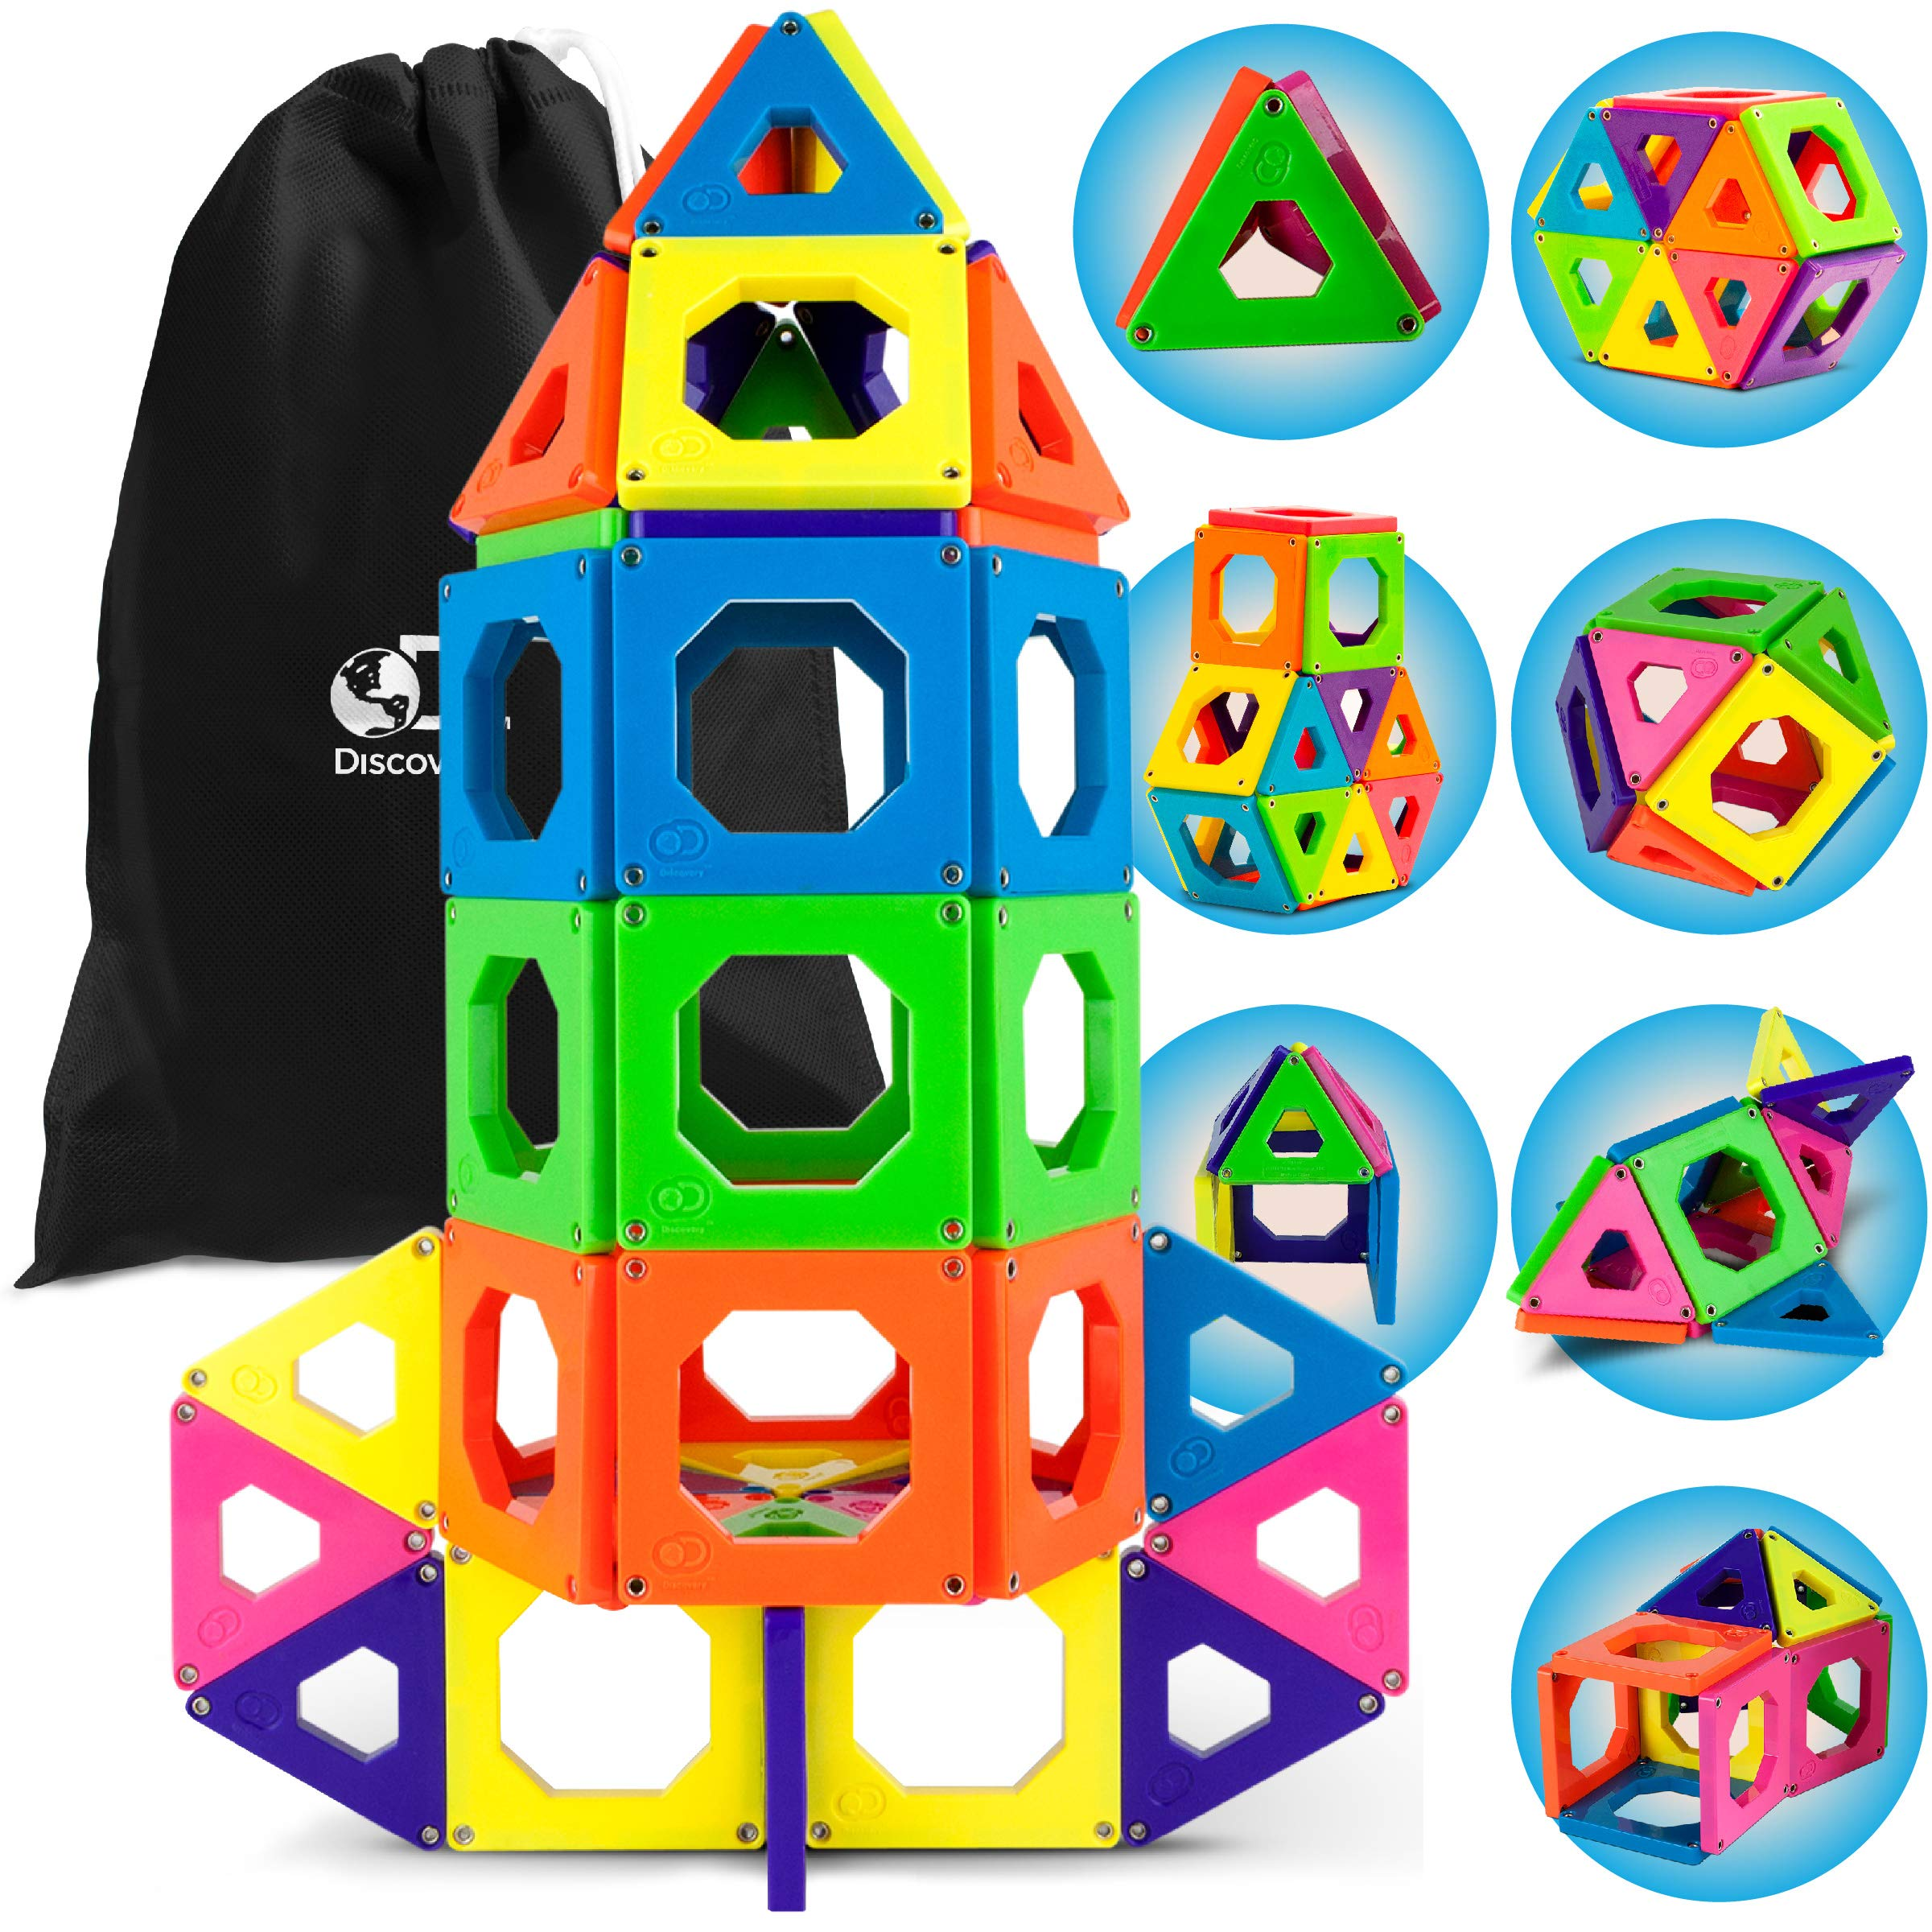 Discovery Kids 50 Piece Magnetic Building Tiles Set, Magnet Blocks 50pcs Construction Kit in 6 Colors, Creativity STEM Toy for Preschool Toddlers, Kids, Girls, Boys w/ Storage Bag {Upgraded Version} by Discovery Kids